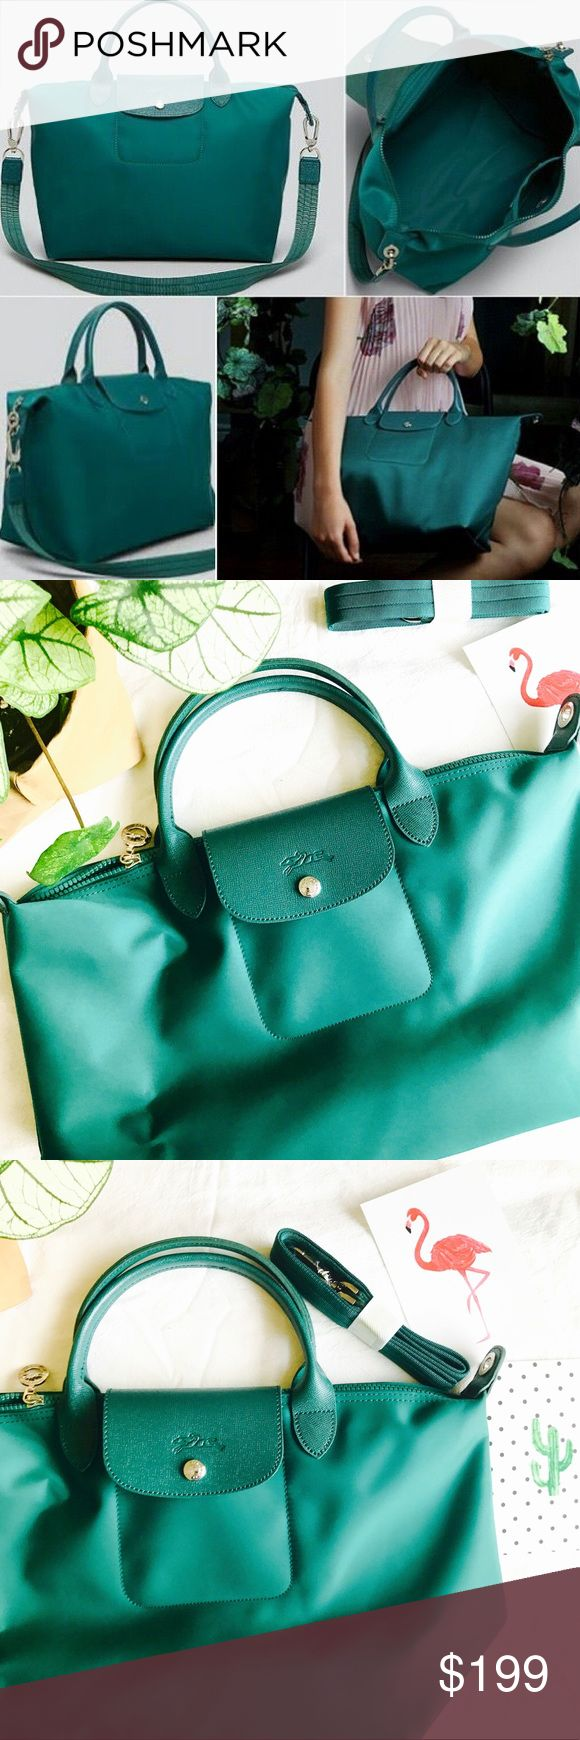 """Longchamp Le Pliage Neo in limited emerald color Brand new longchamp Le Pliage Neo tore in medium size // beautiful limited edition emerald color //          SIZE INFO 12 ½""""W x 11""""H x 6 ¾""""D. (Interior capacity: large.) 4"""" strap drop; 18"""" shoulder strap drop.   Lightly textured leather borders a sleek, classic tote that folds flat when not in use, making it perfect for travel. Longchamp Bags Totes"""